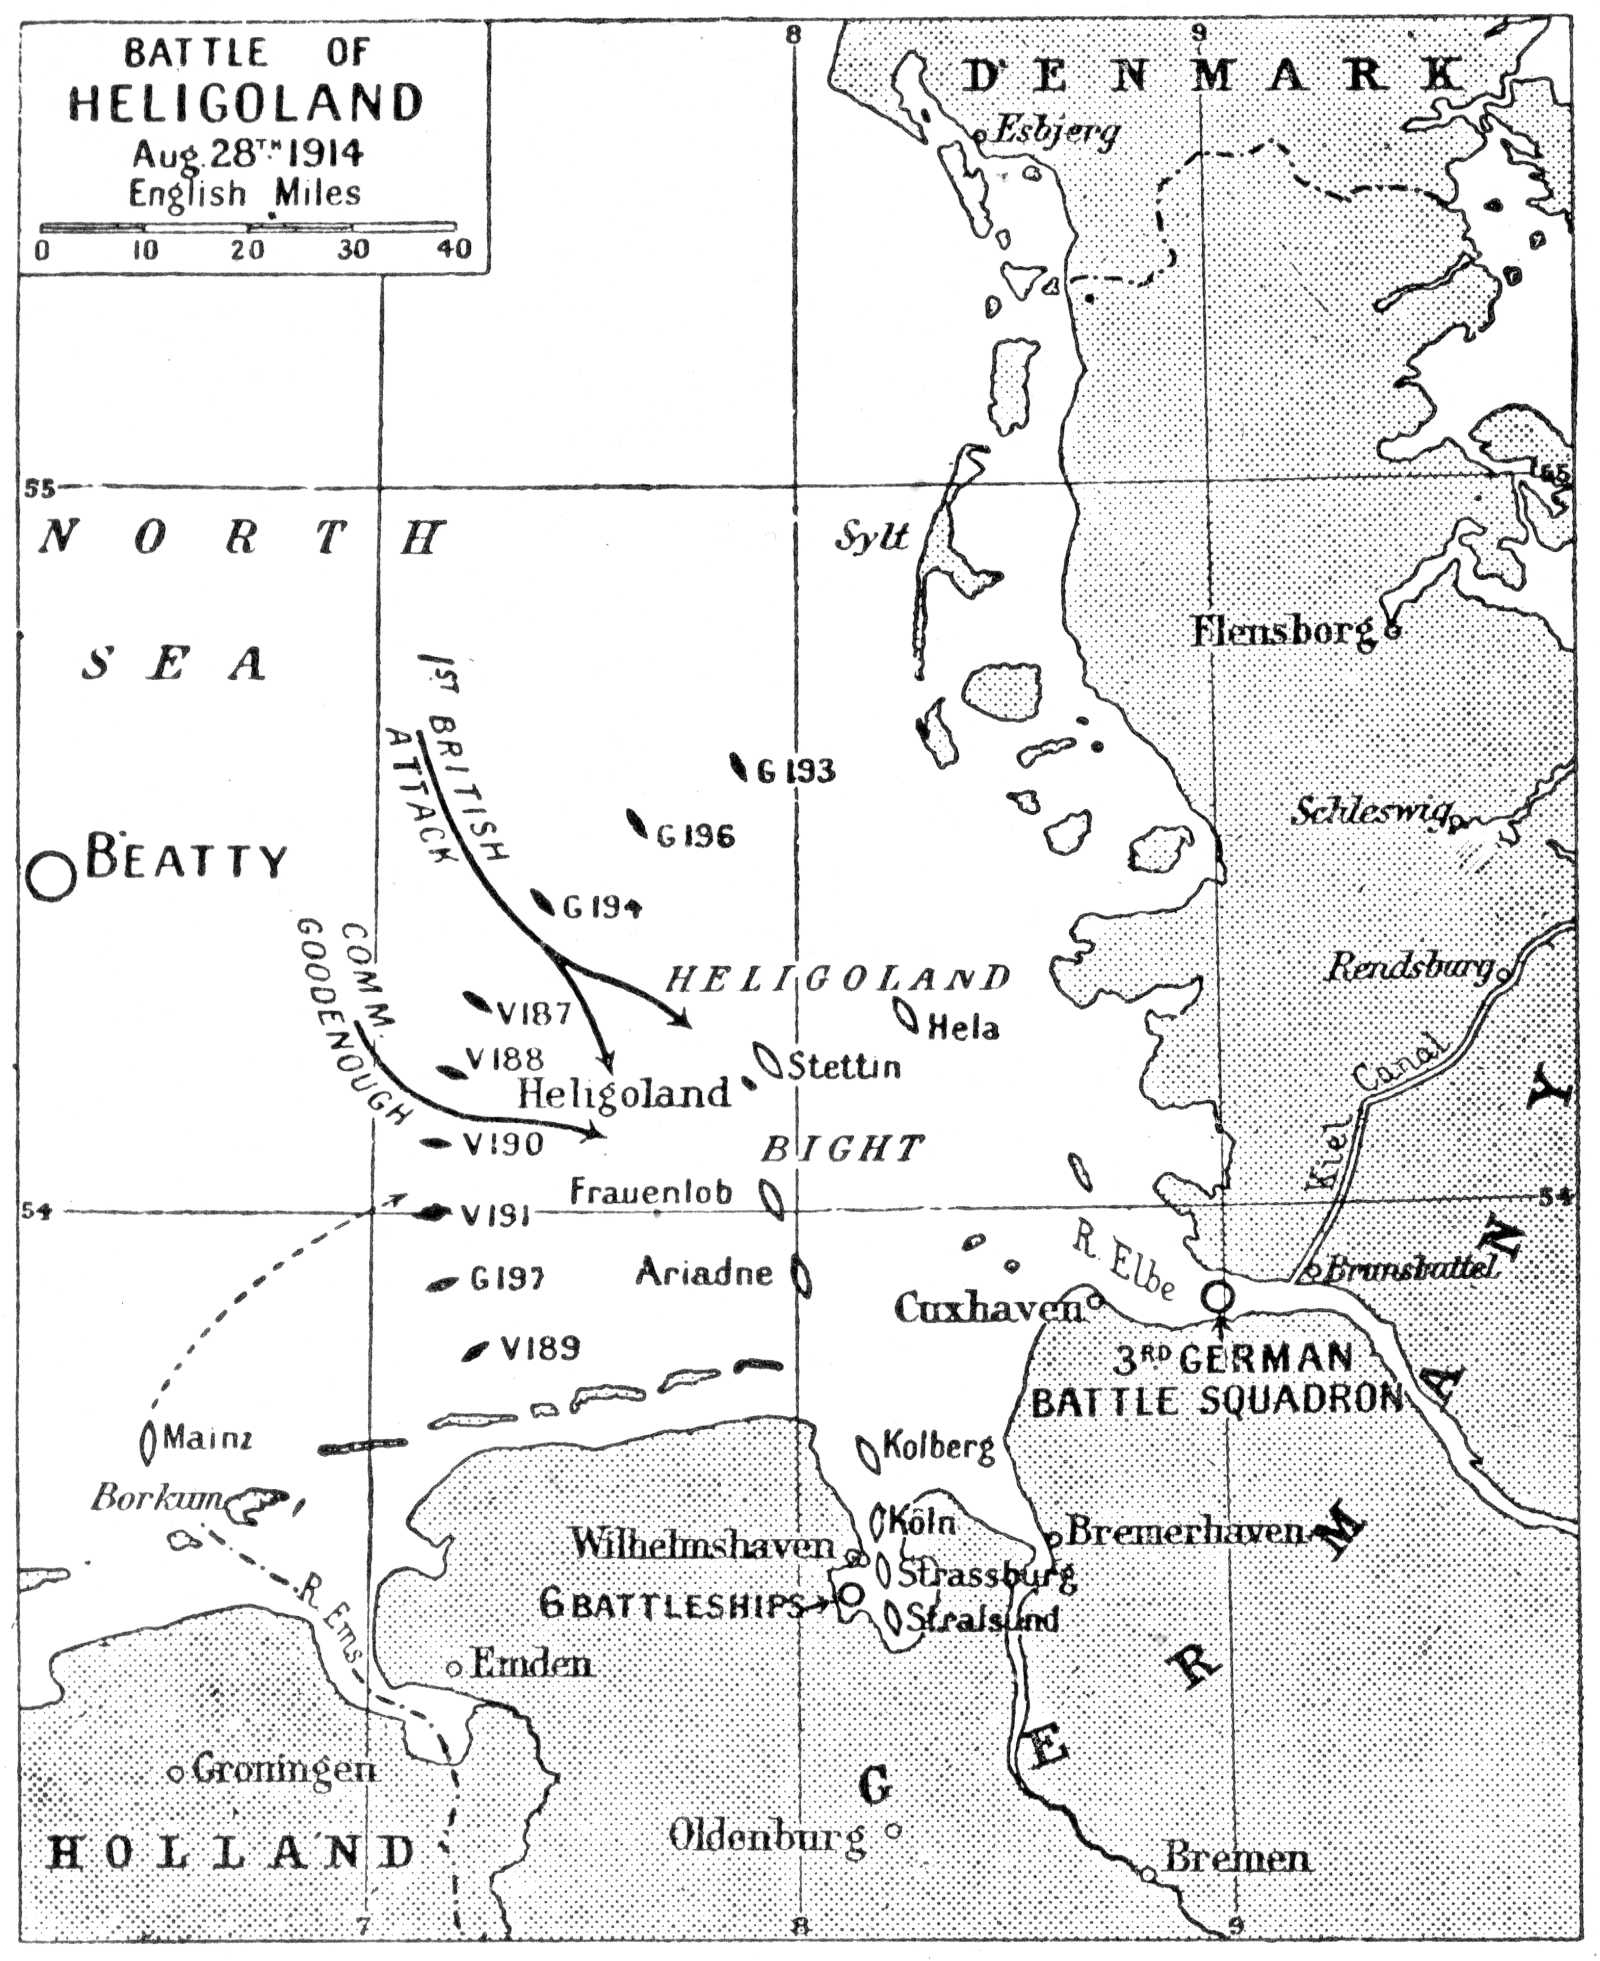 Map of the Battle of Heligoland Bight. Via Probert Encyclopedia